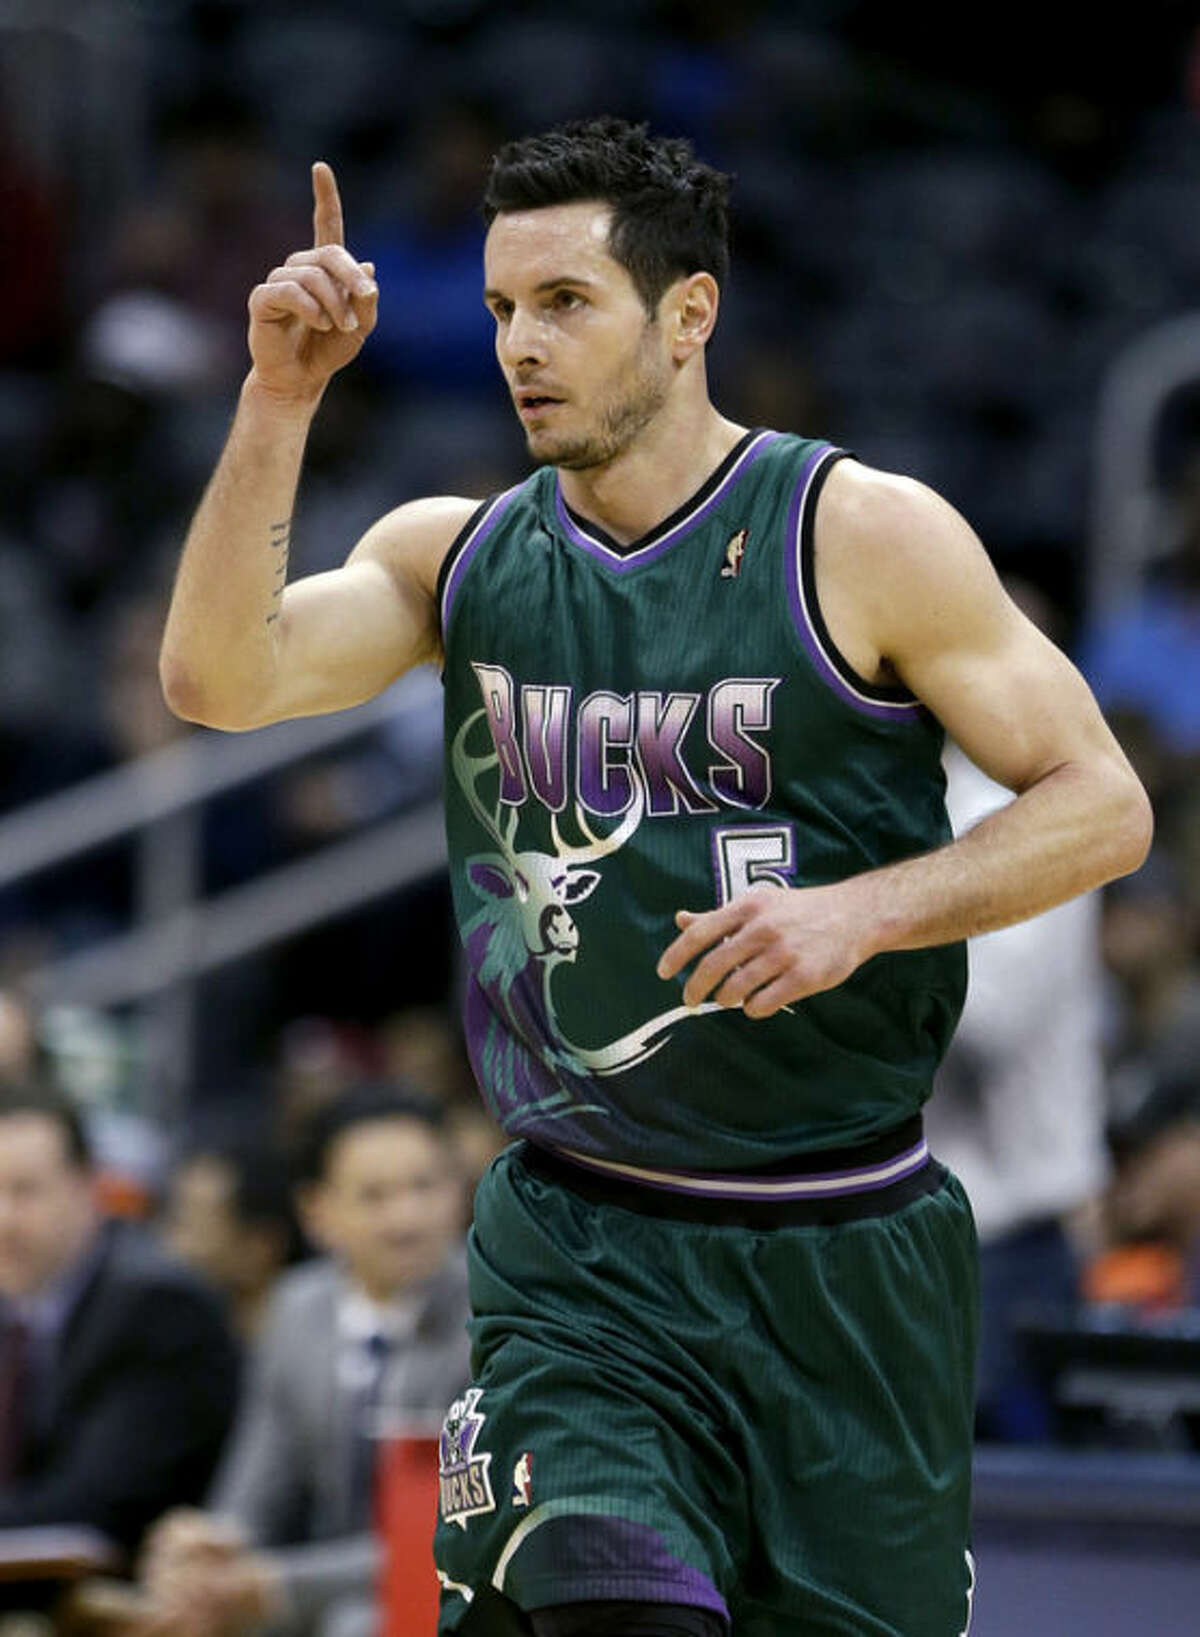 In this March 20, 2013, photo, Milwaukee Bucks guard J.J. Redick gestures during an NBA basketball game against the Atlanta Hawks in Atlanta. A person with knowledge of the situation says a three-team trade is in place that sends Redick from the Bucks to the Los Angeles Clippers and point guard Eric Bledsoe from the Clippers to the Phoenix Suns. The deal also sends Jared Dudley from the Suns to the Clippers and Caron Butler from the Clippers to the Suns. (AP Photo/David Goldman)